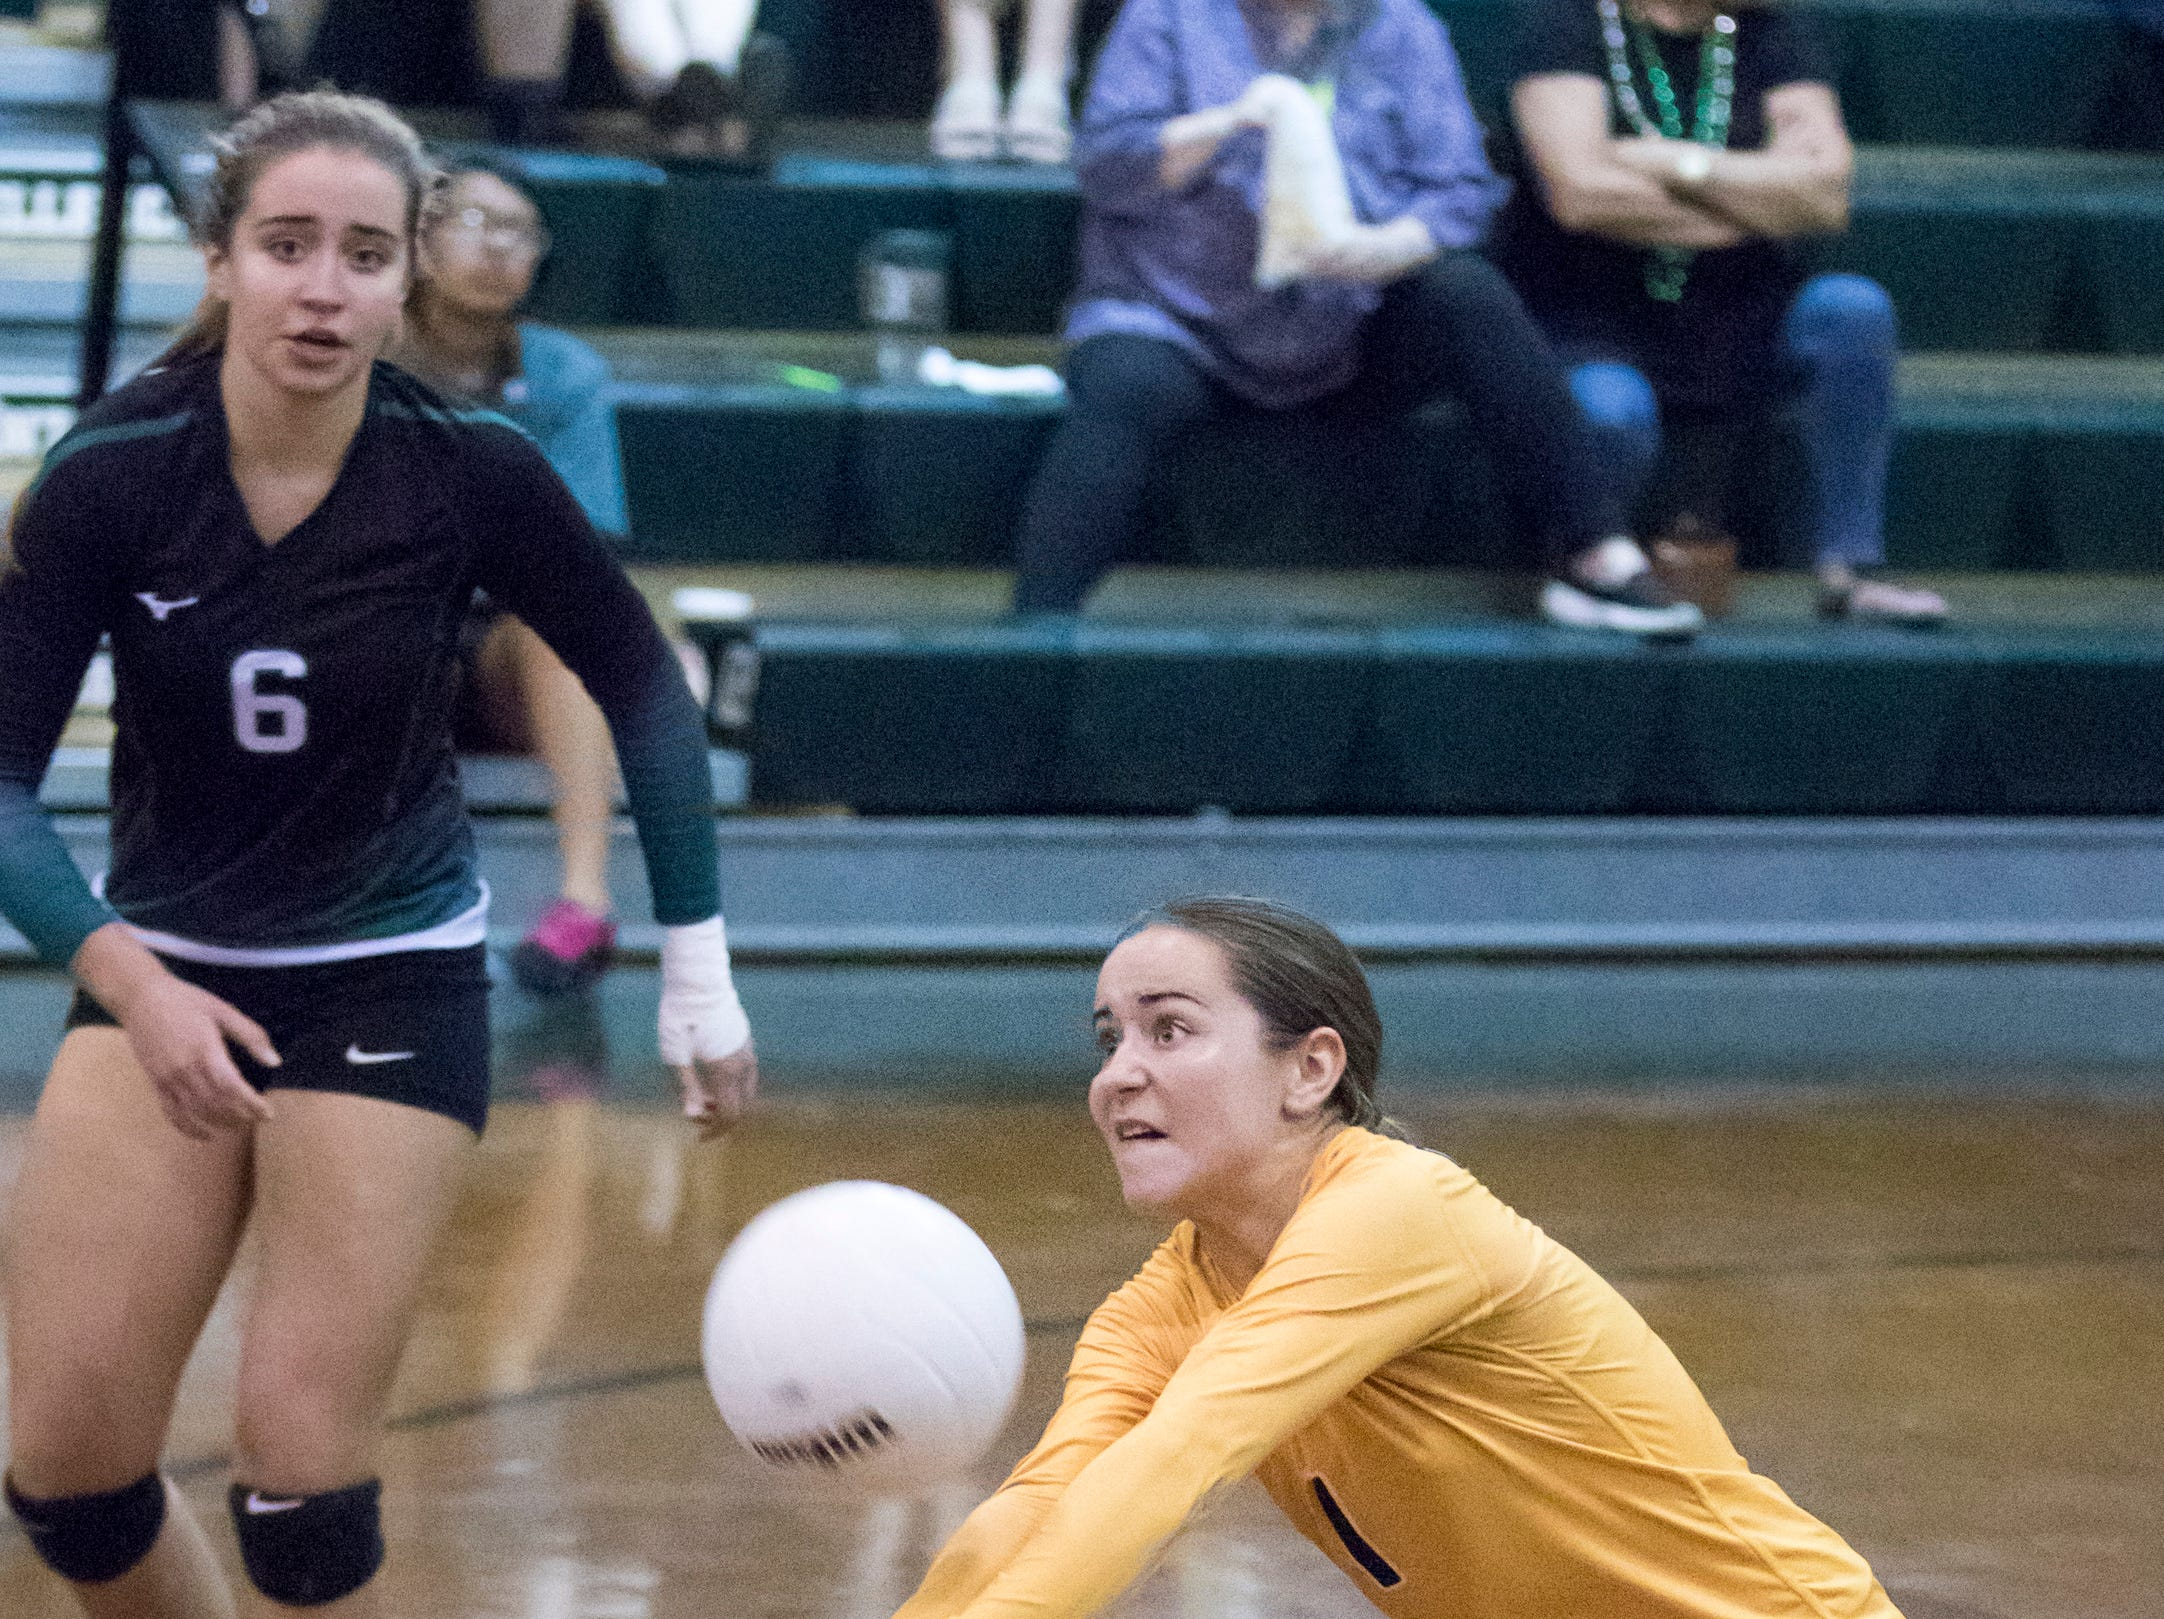 Madison Galloway (1) returns the ball during the Mosley vs Catholic volleyball match at Catholic High School in Pensacola on Thursday, October 4, 2018.